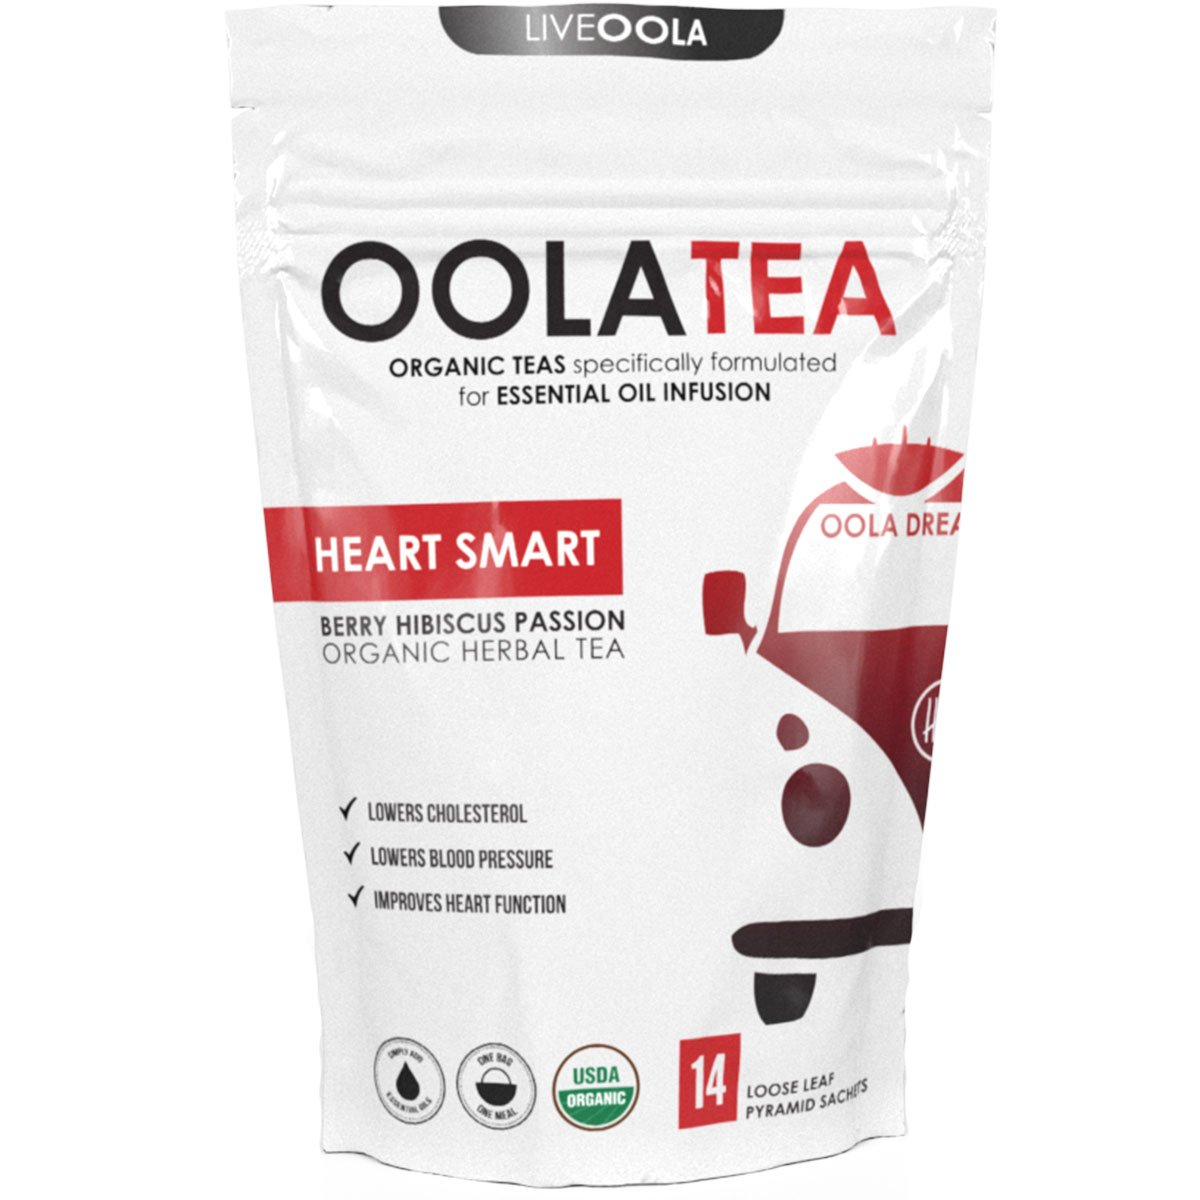 OolaTea - HEART SMART (Berry Hibiscus Passion) 14 Count | Organic Herbal Tea | Lowers Cholesterol | Improves Heart Function